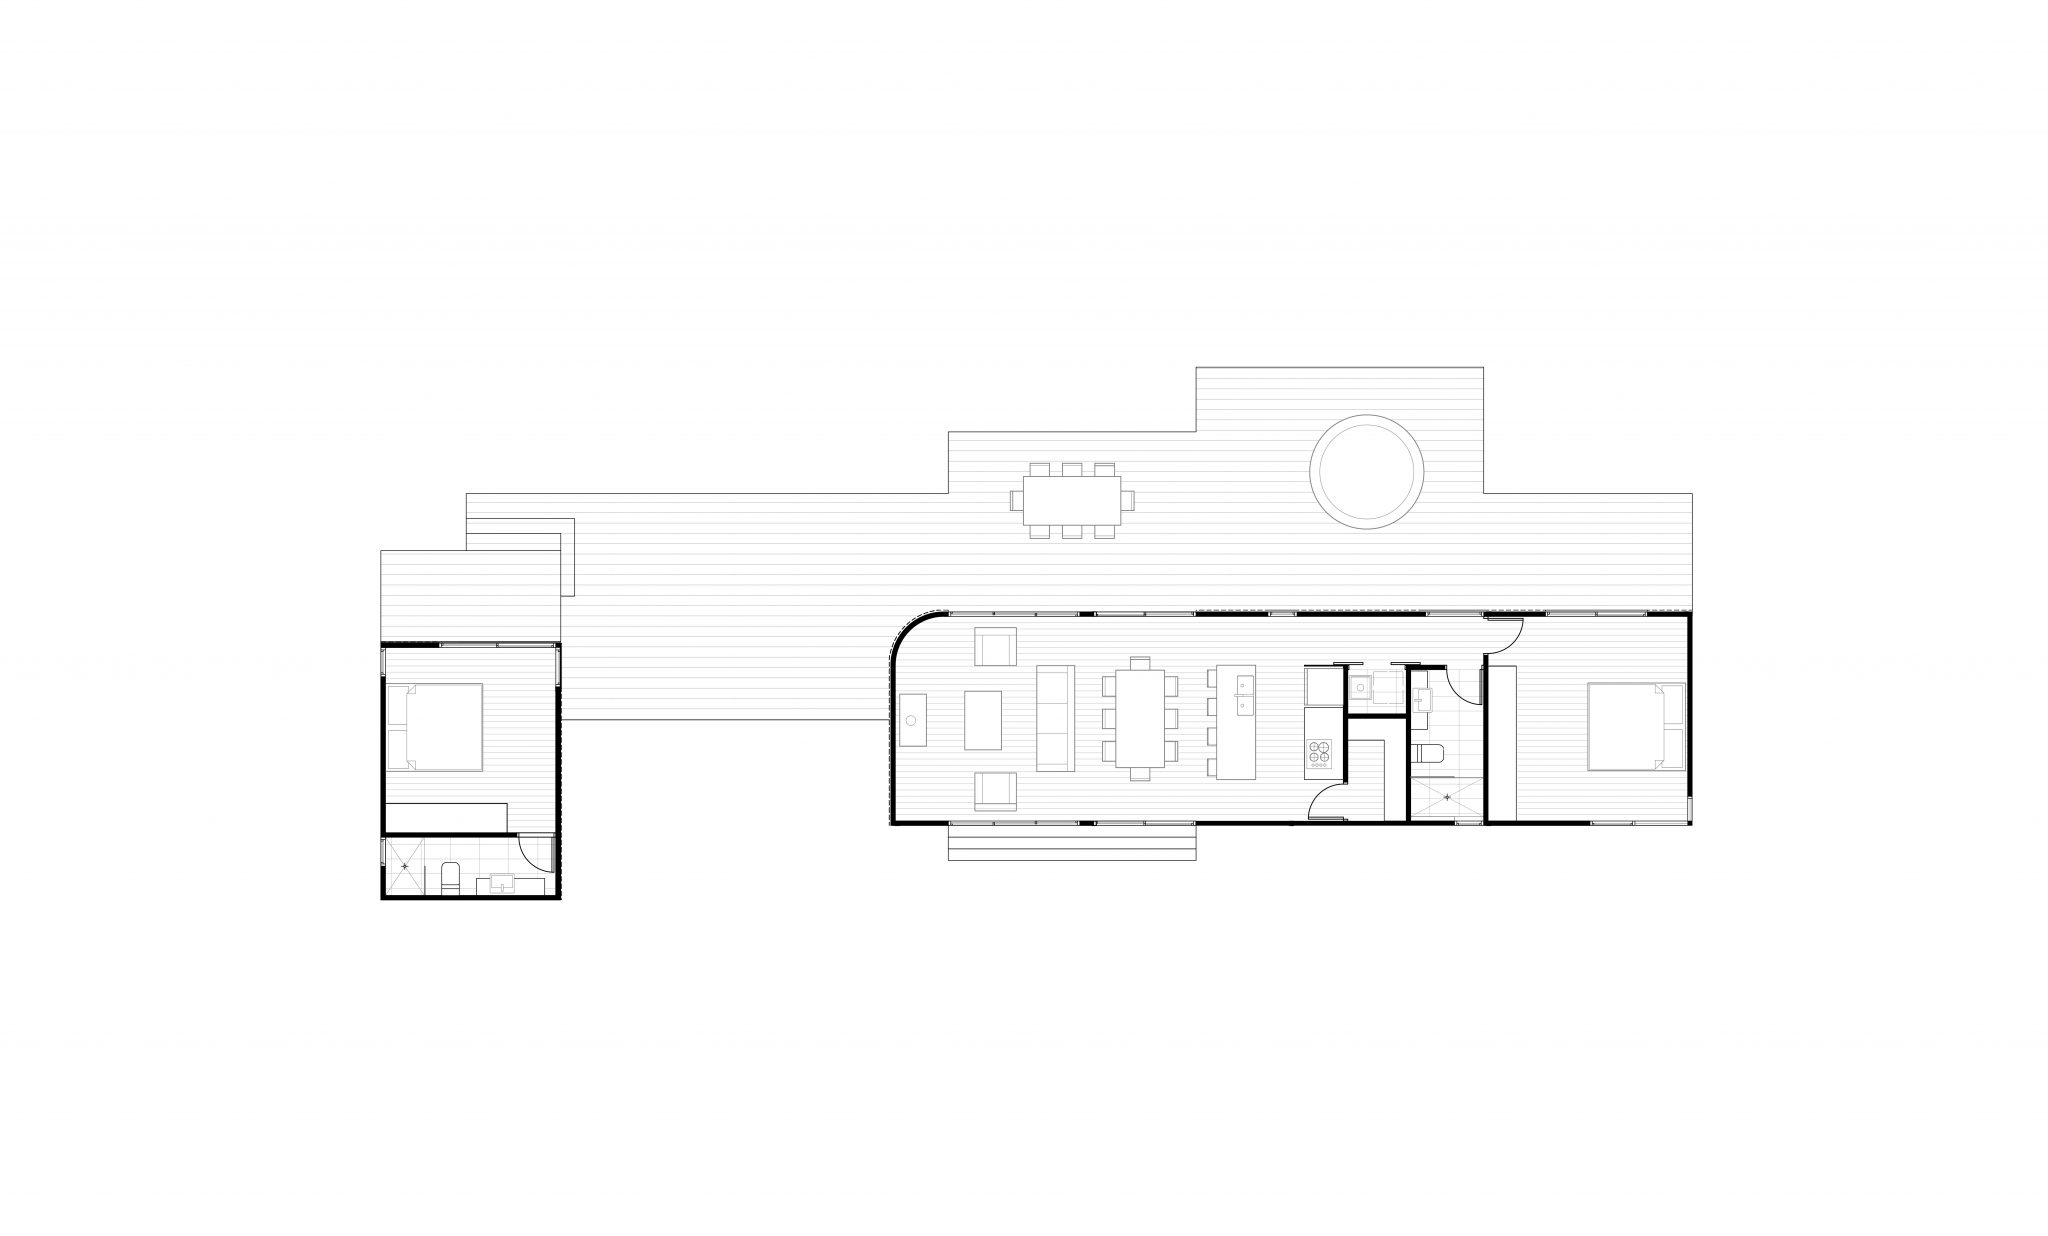 clydesdale house floor plan